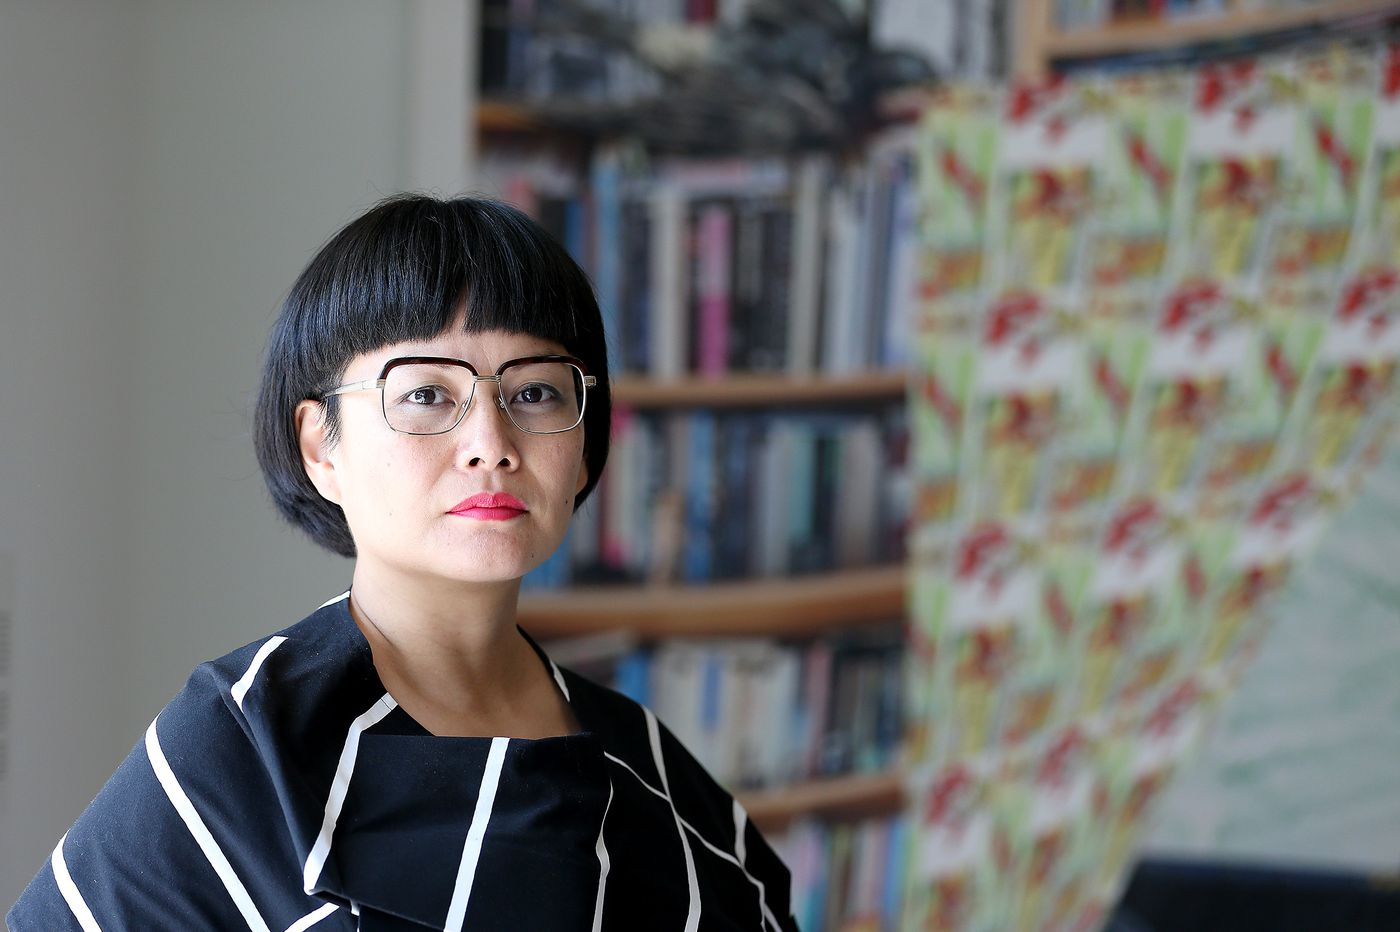 From publishing gay manga to running the asian arts initiative anne ishii does it all